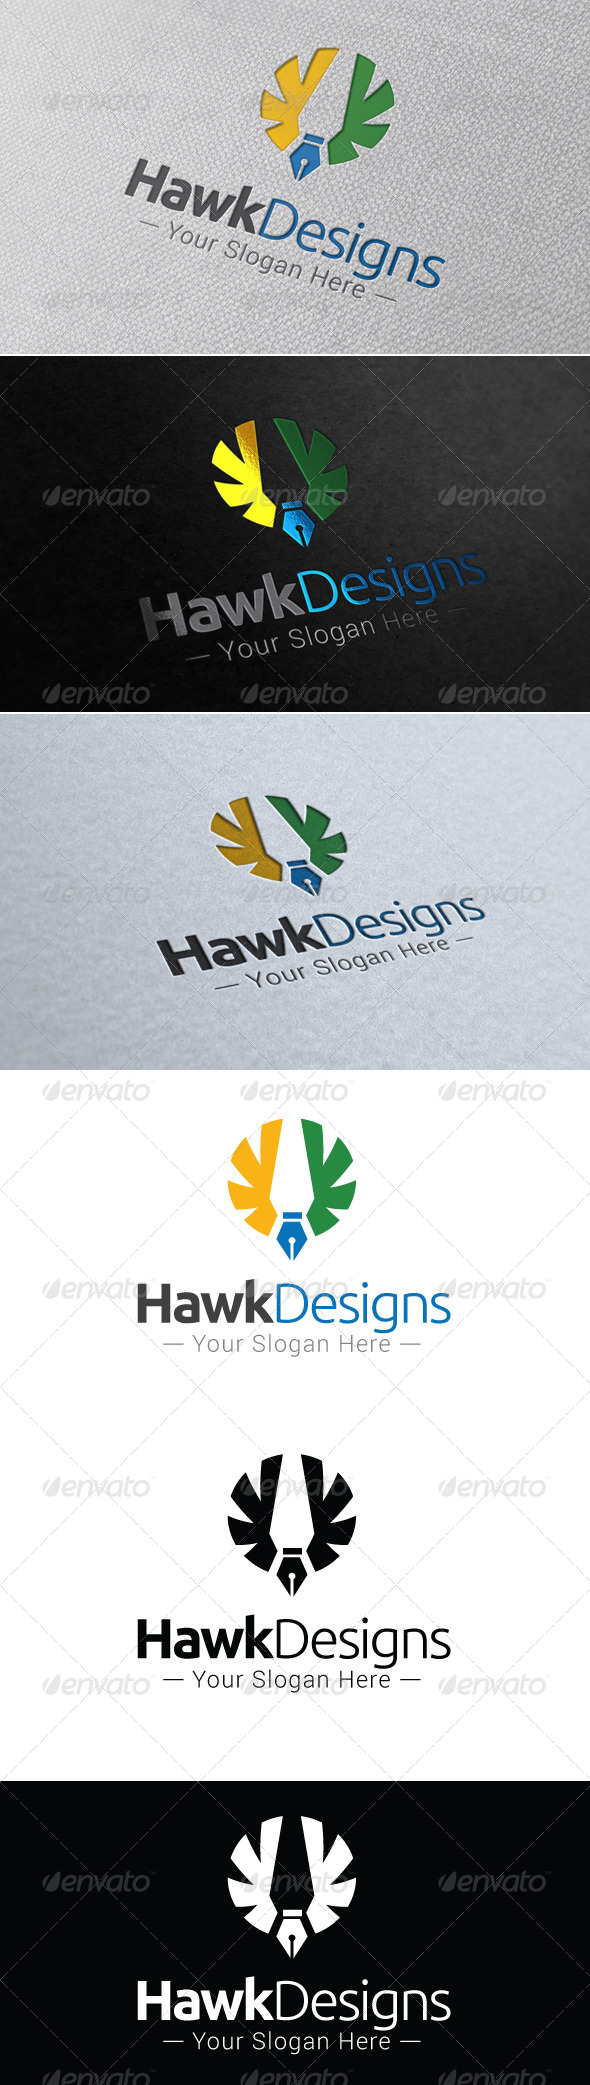 GraphicRiver Hawk Designs Logo Template 7655099